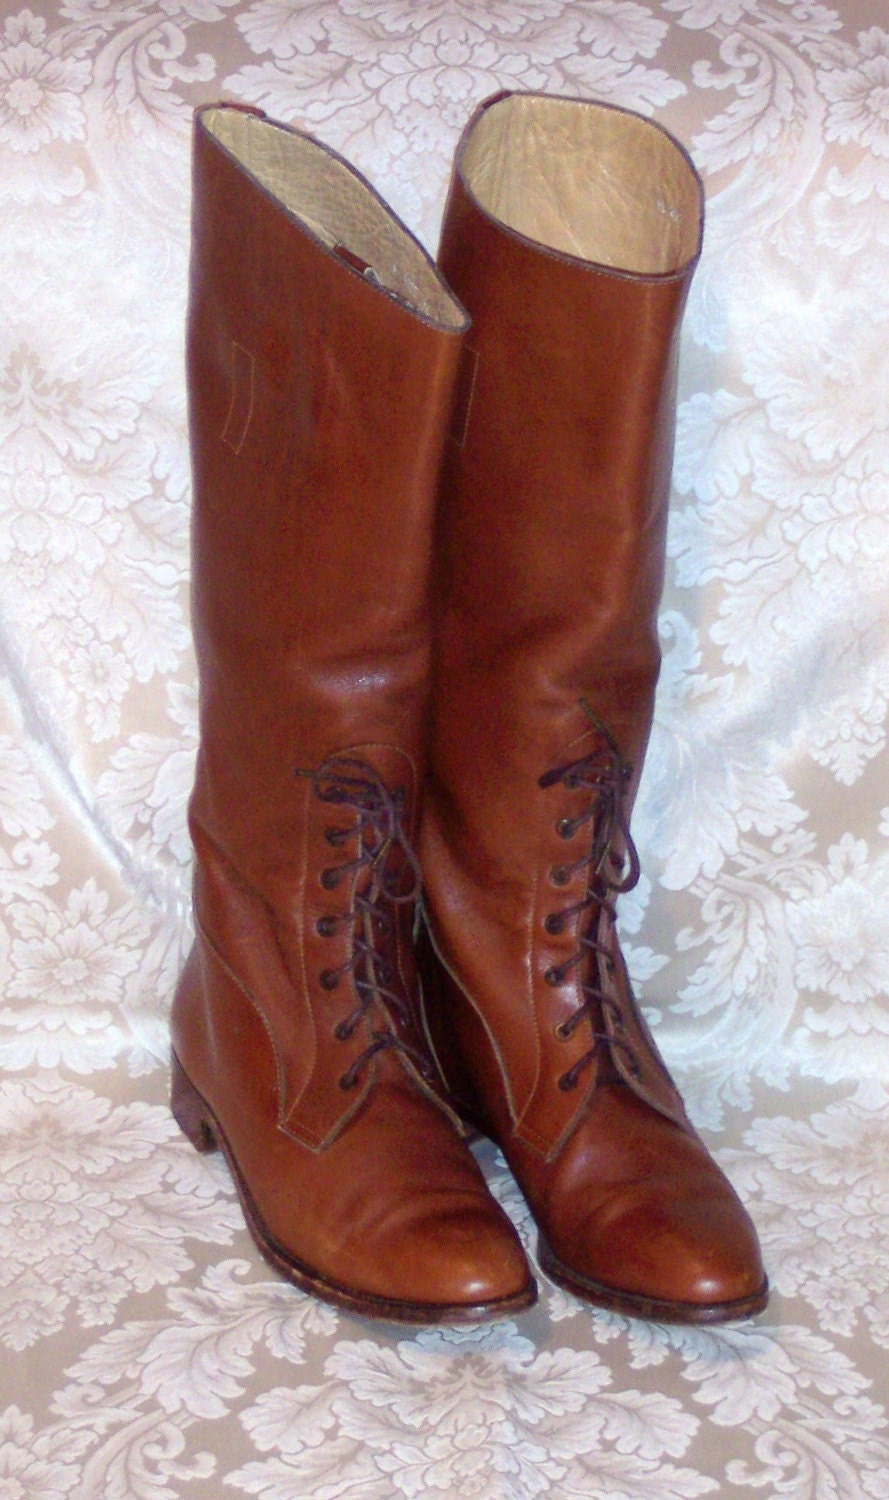 TREASURE HUNTING 101: VINTAGE RALPH LAUREN RIDING BOOTS - Tales ...